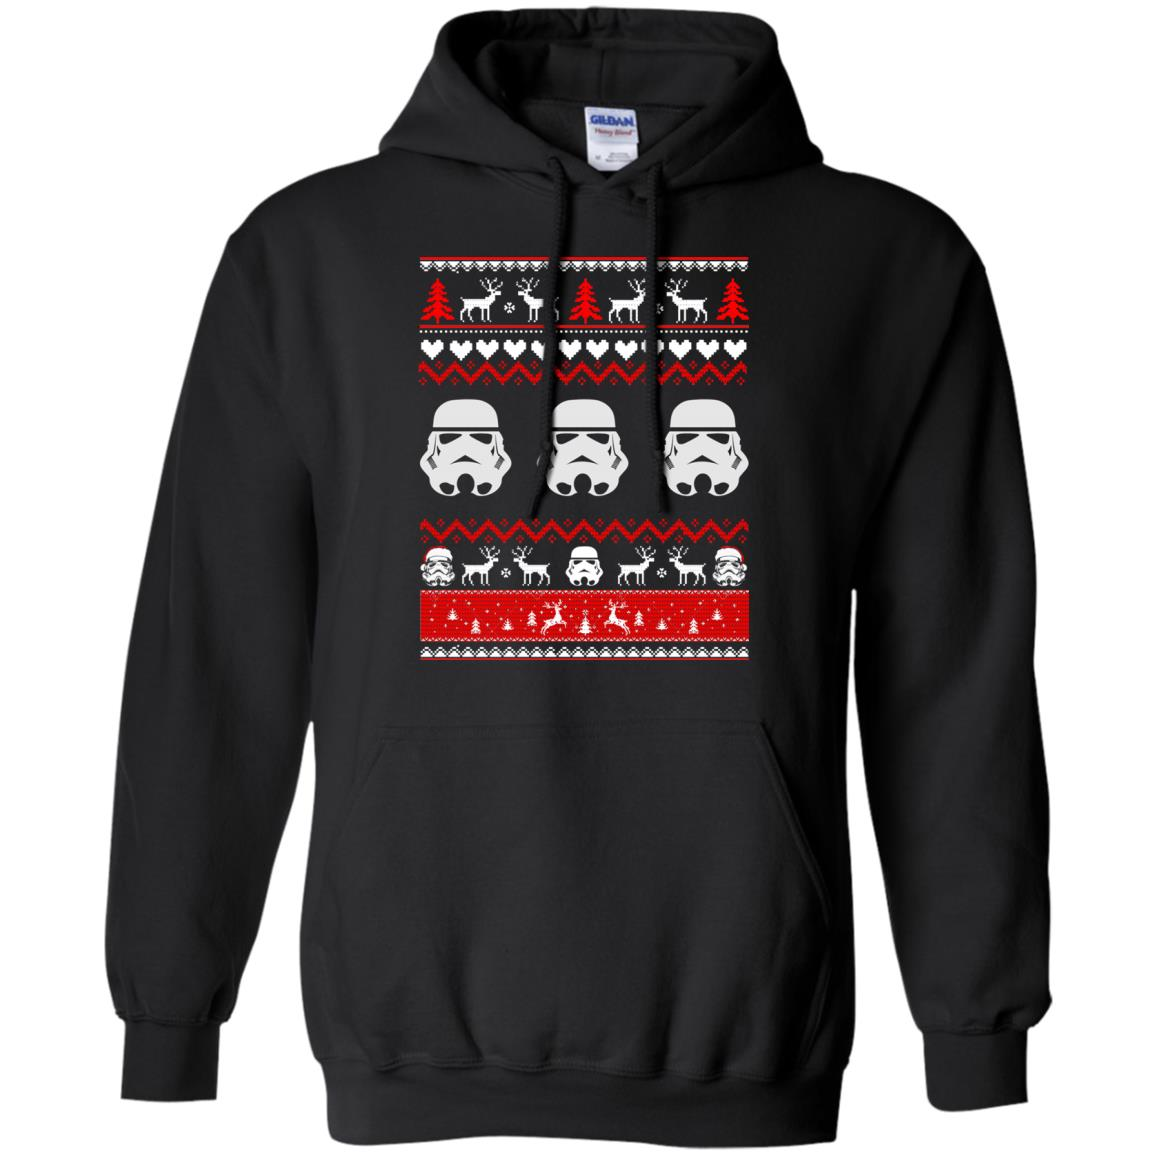 image 1726 - Stormtrooper Star Wars Ugly Christmas Sweatshirt, Shirt